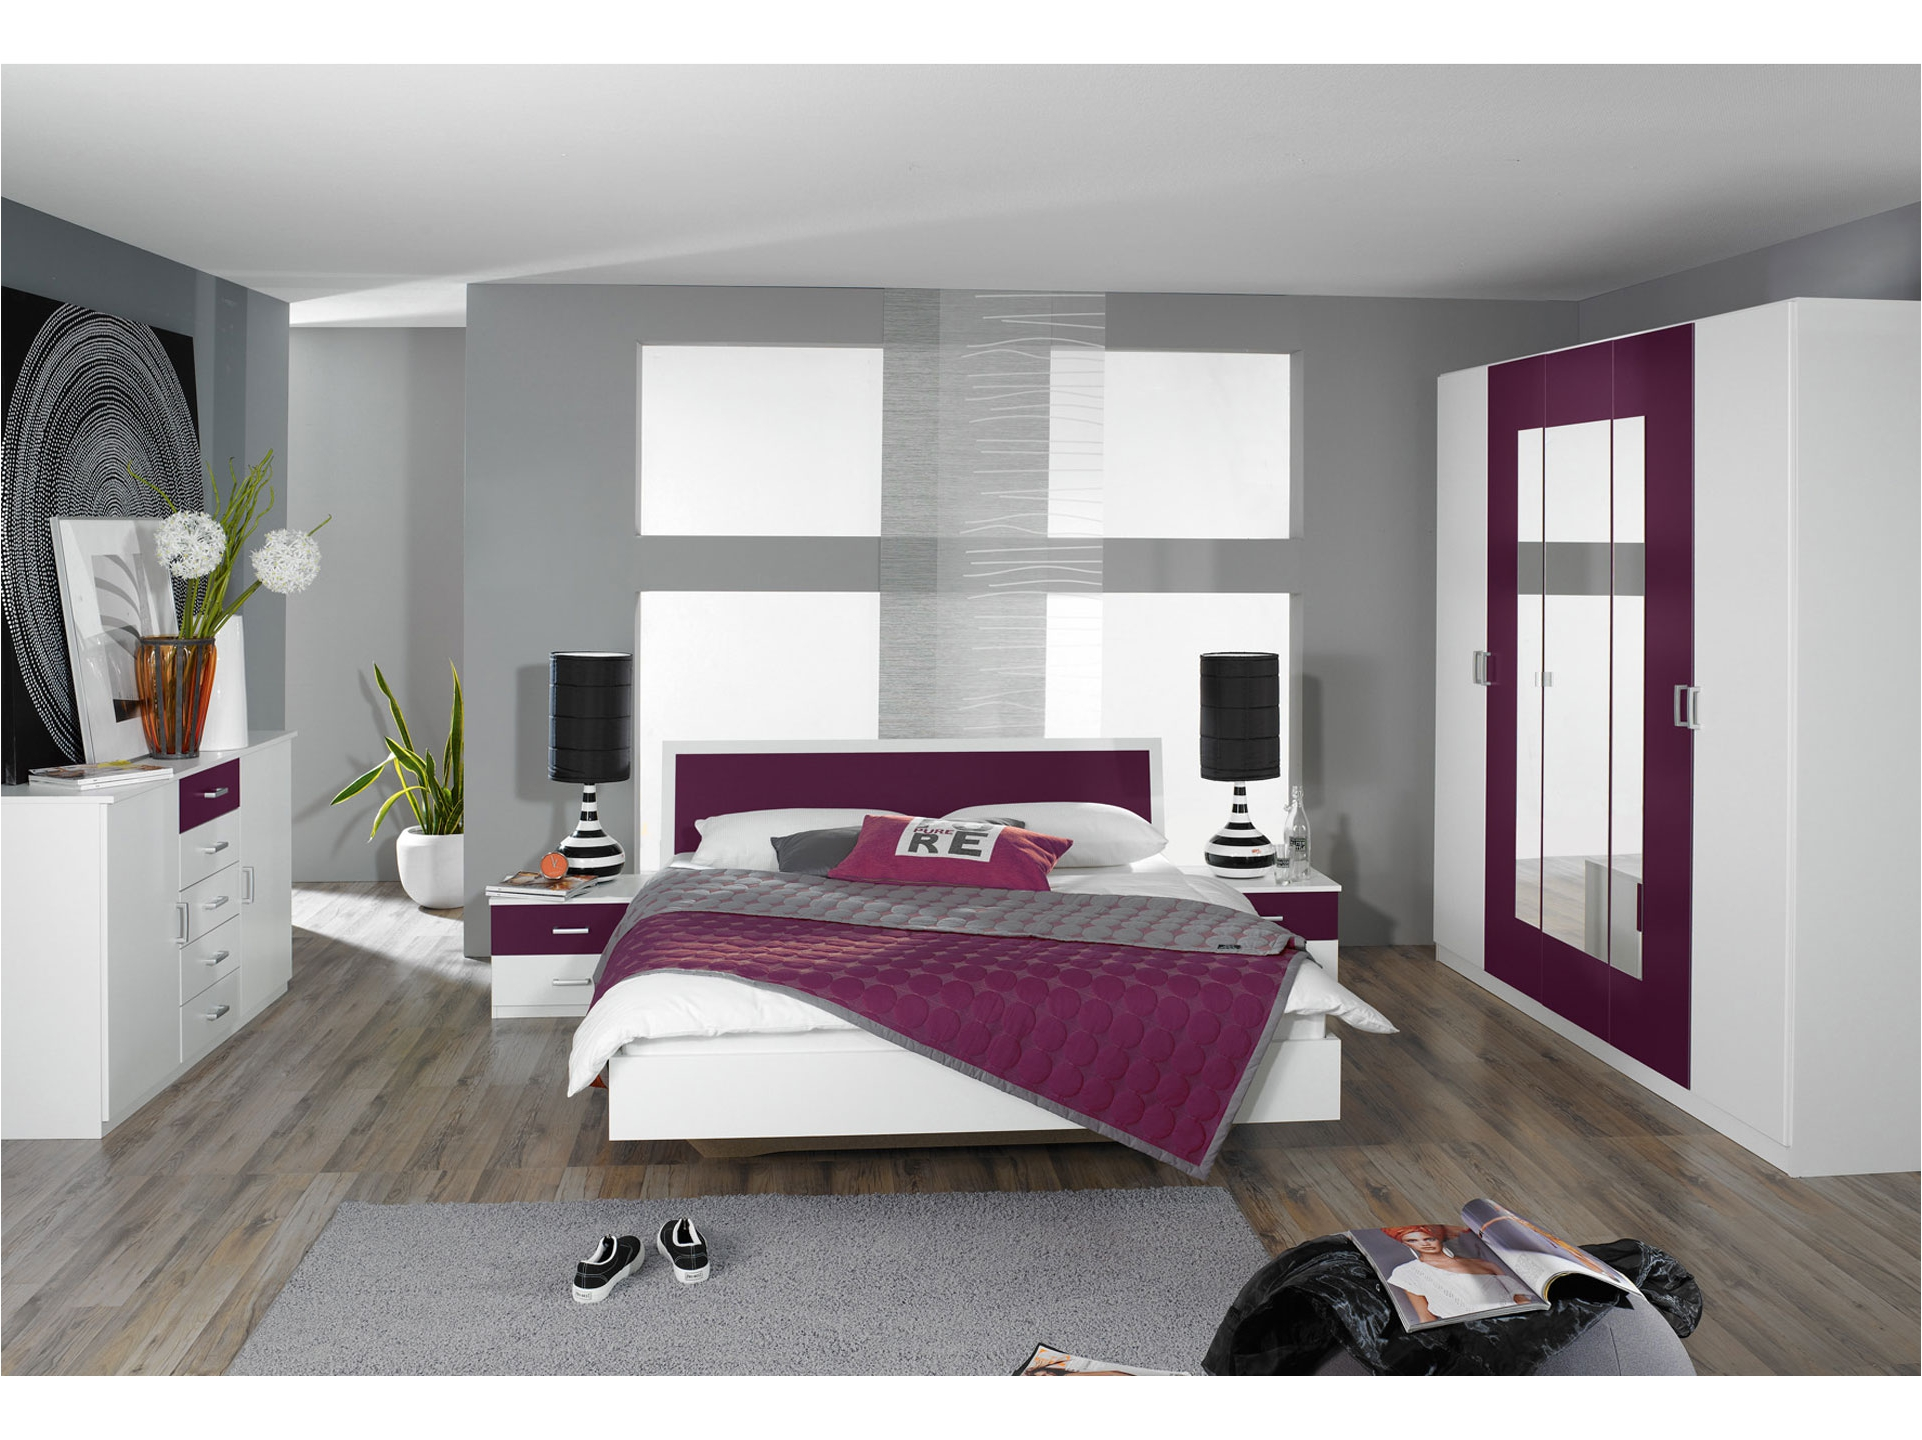 D co chambre gris et prune for Decoration salon prune